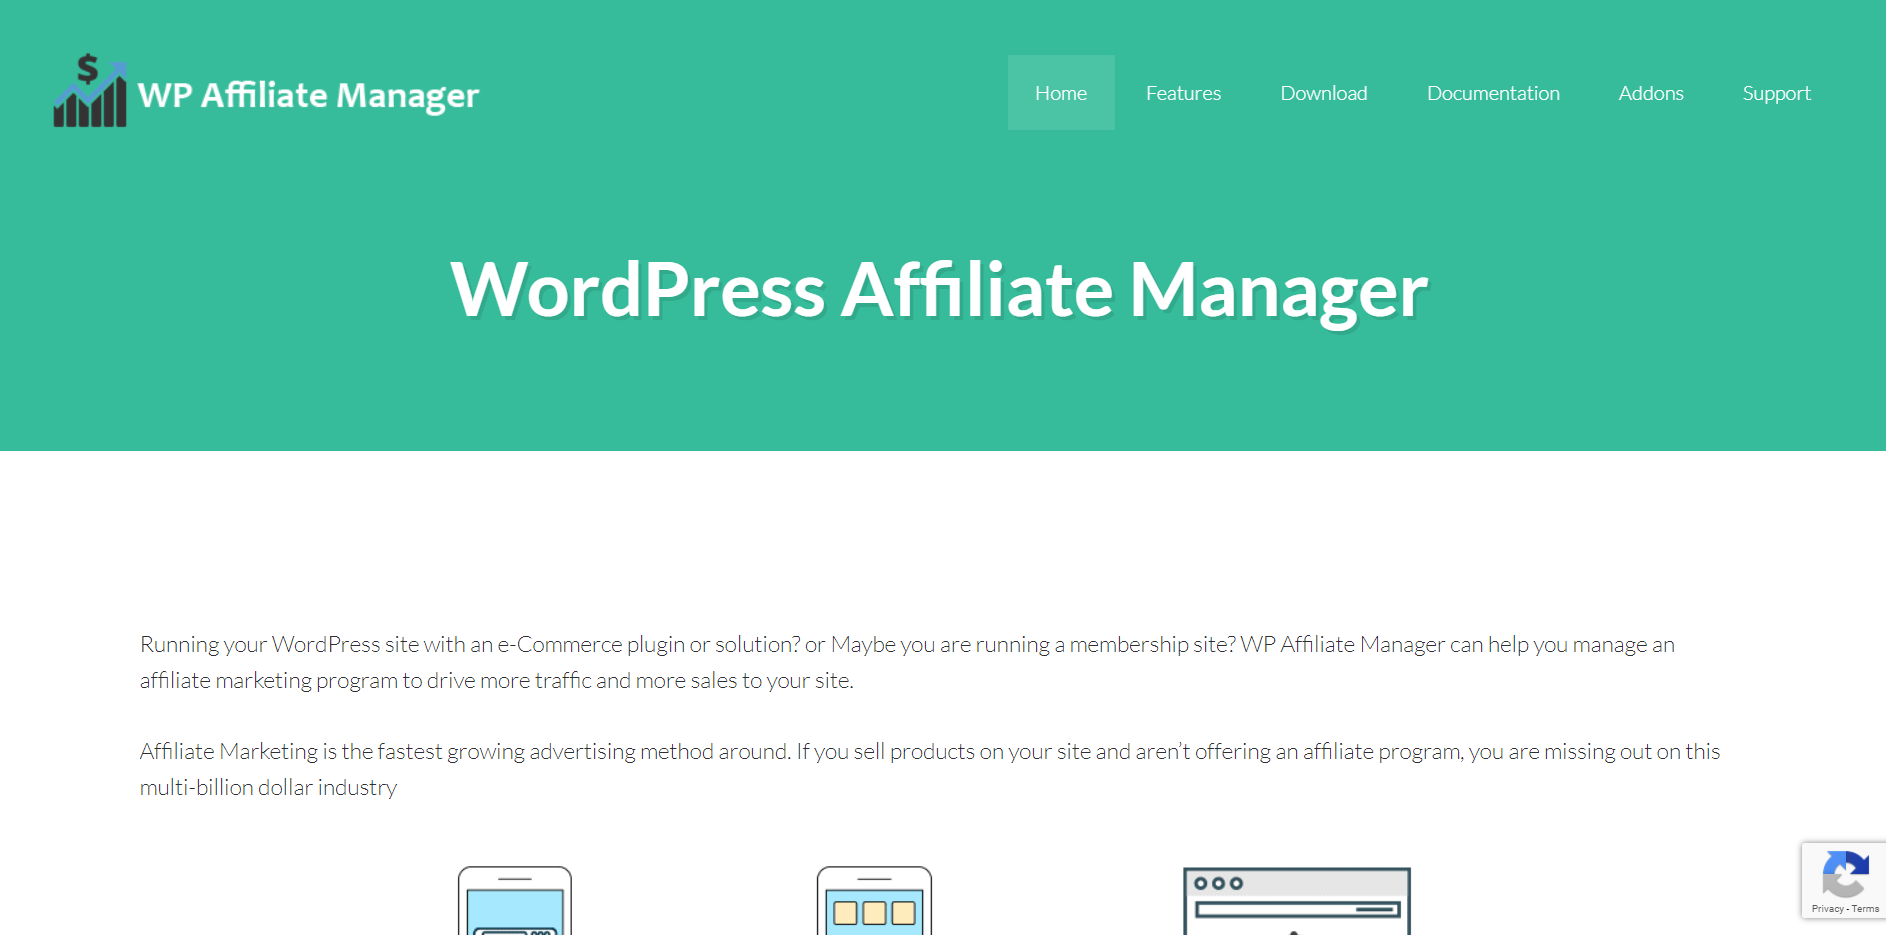 wp affiliate manager